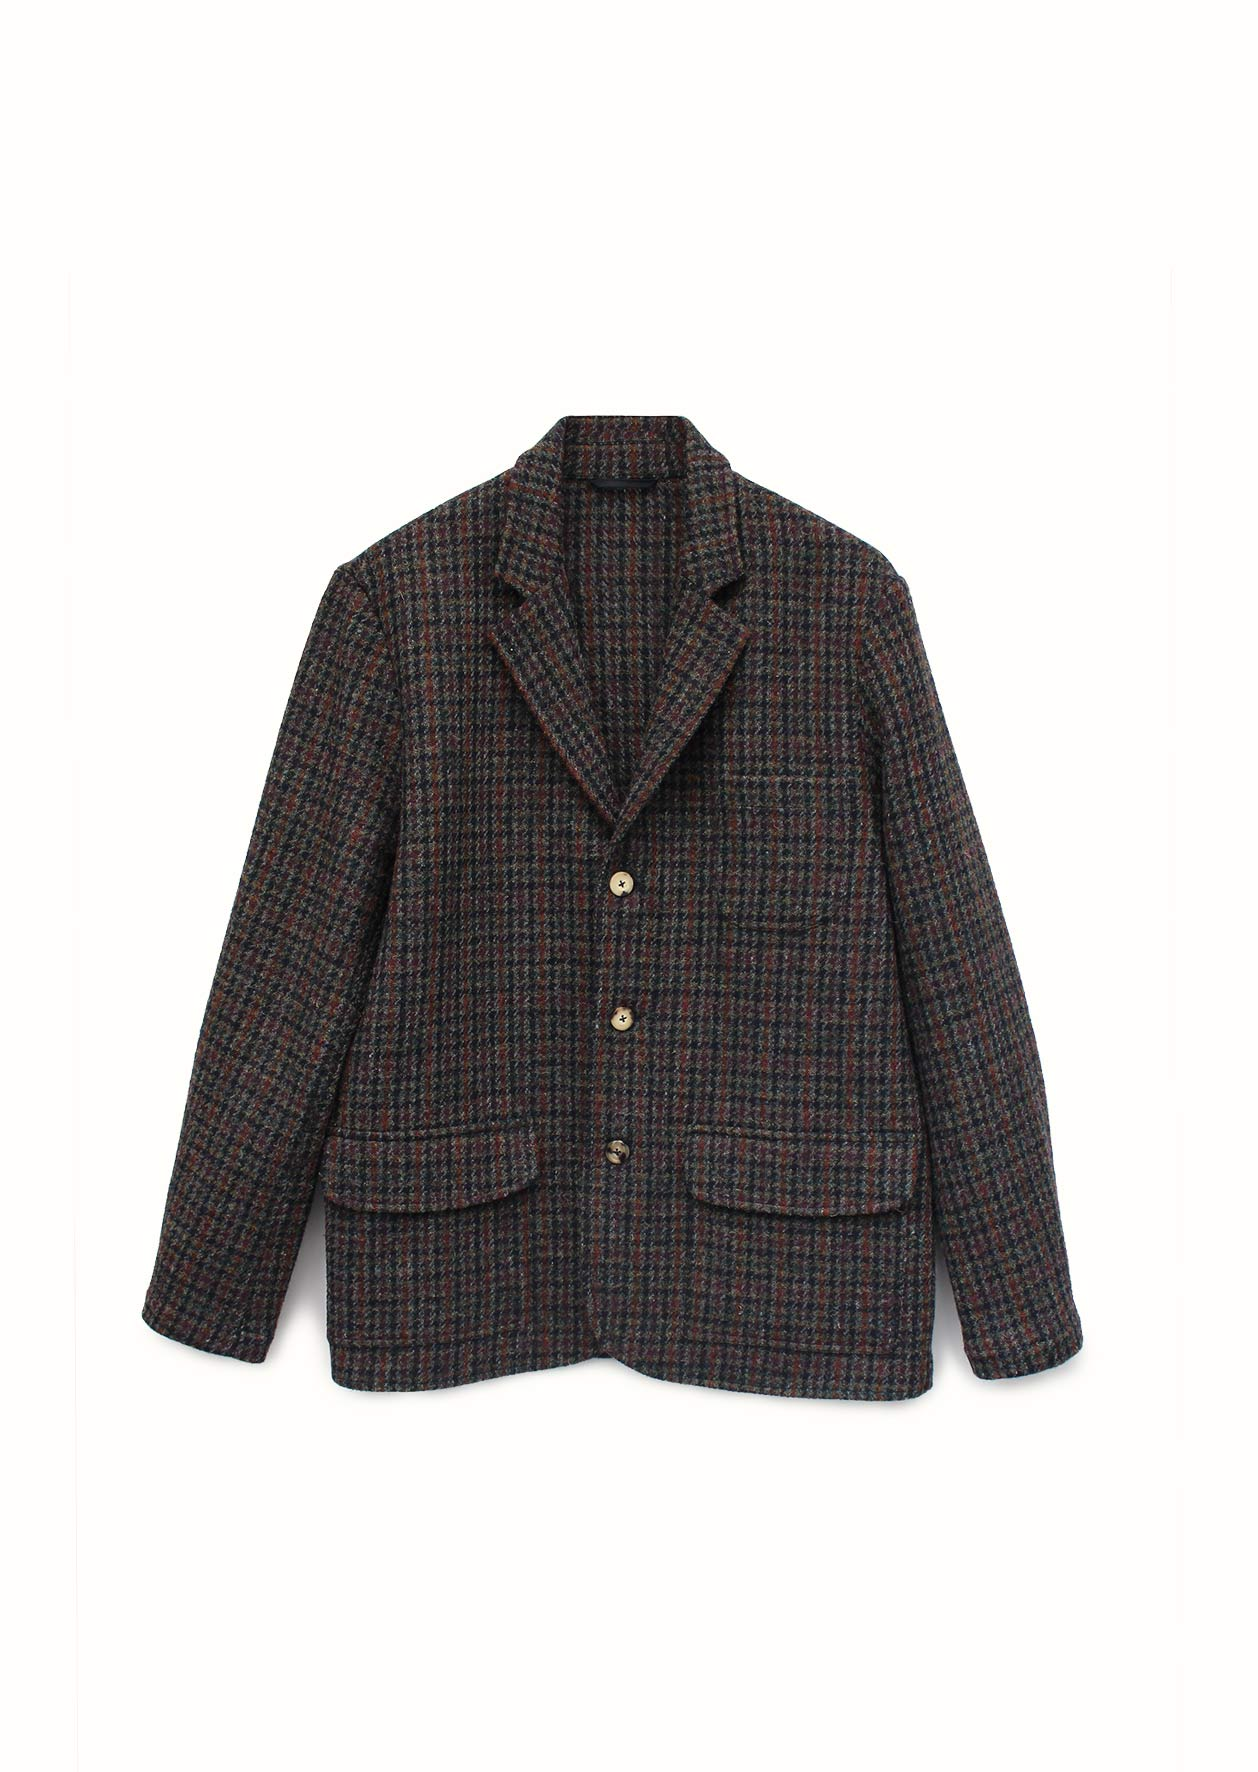 De Bonne Facture - Casual jacket - Wool - Navy houndstooth